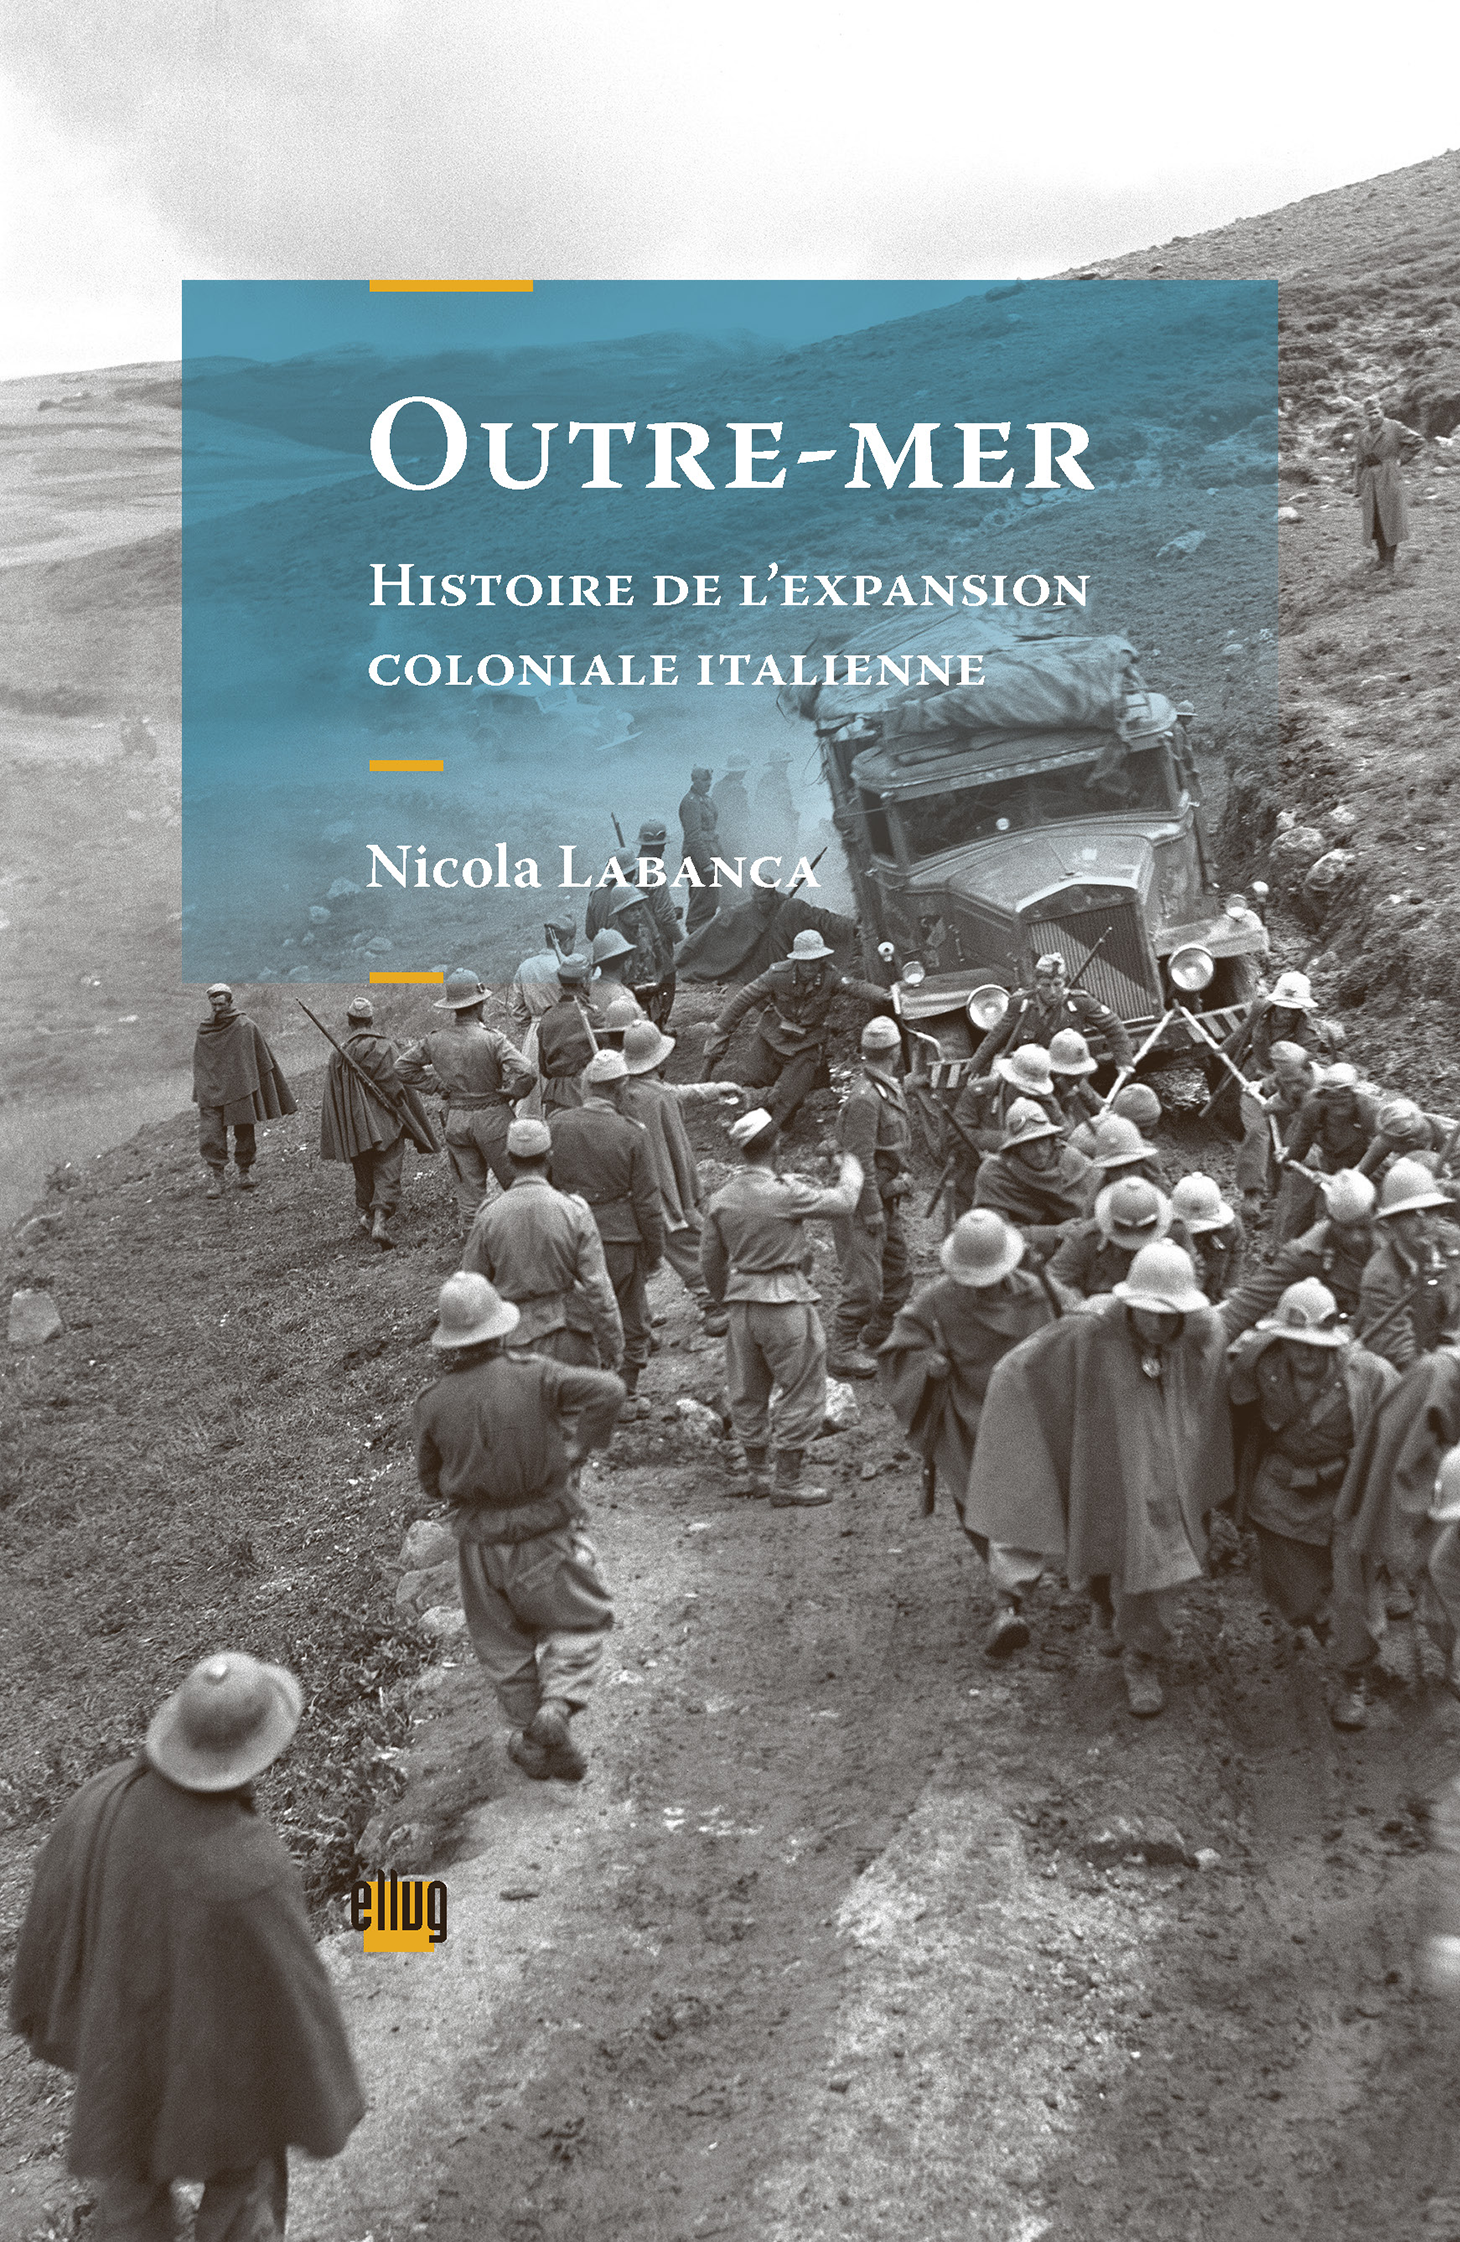 Couverture Outre-mer, colonisation italienne